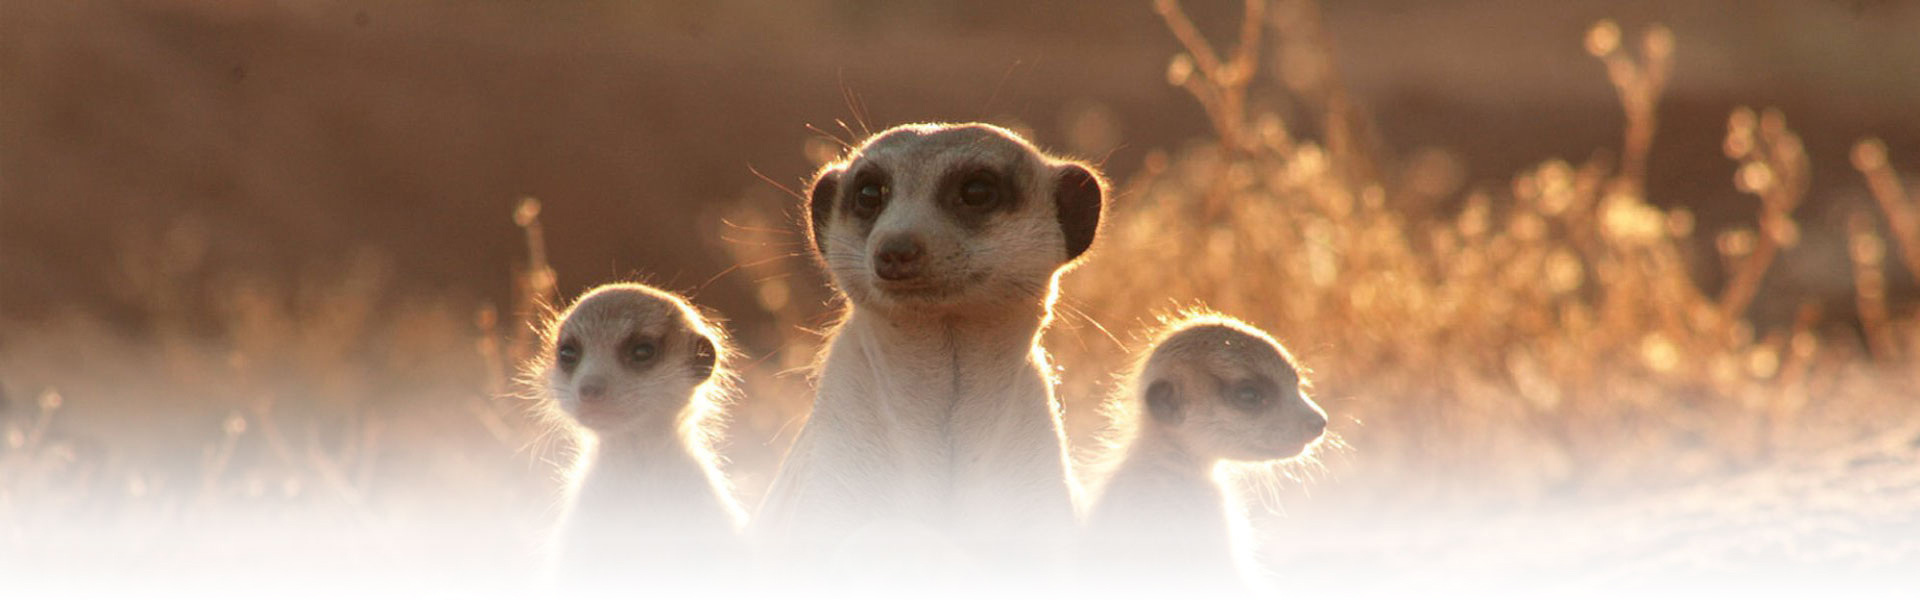 A group of curious and nosy meerkats